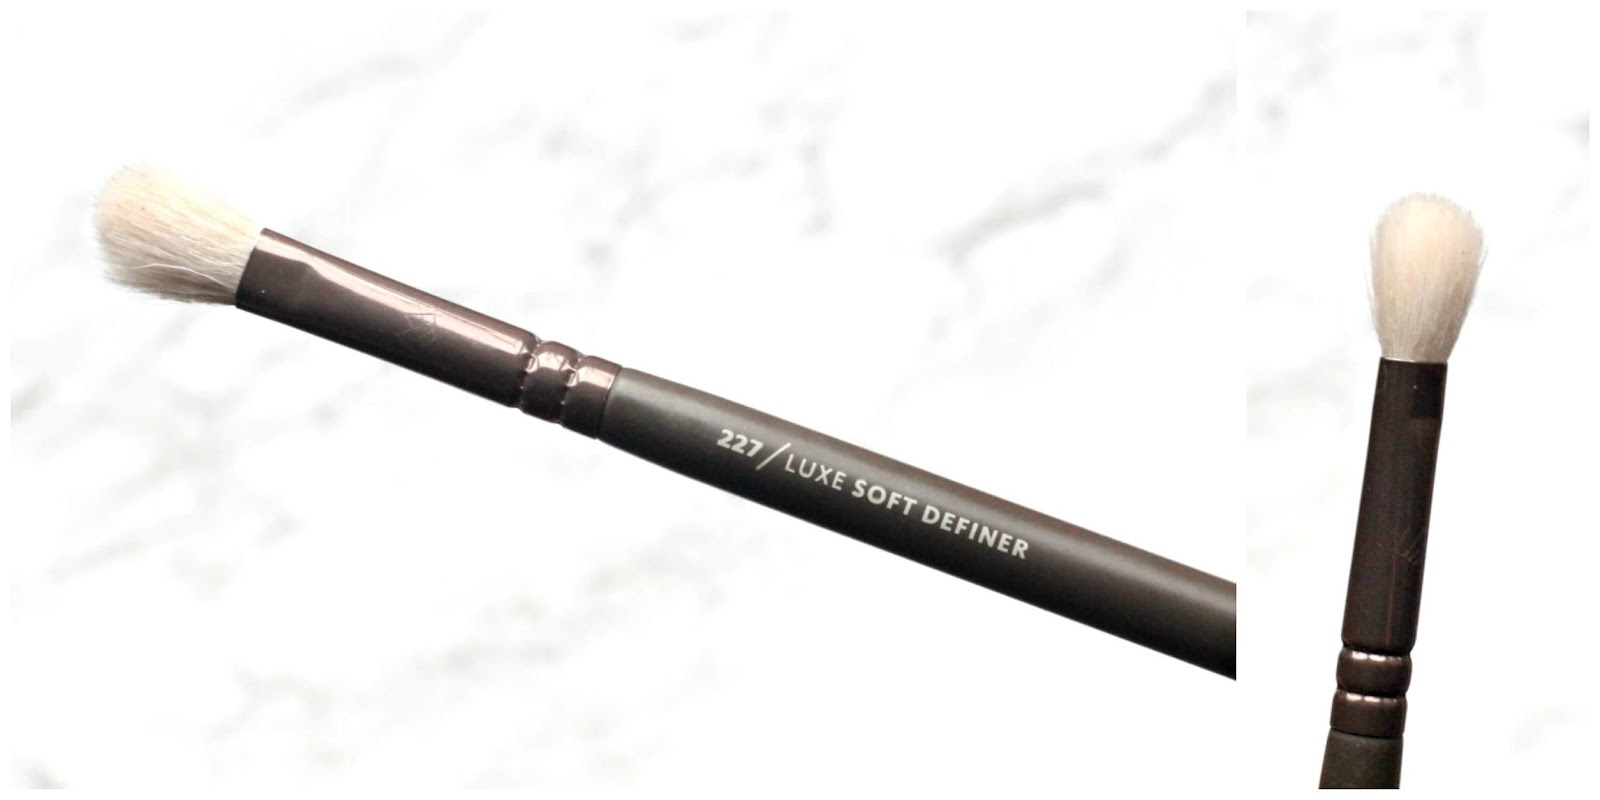 zoeva en taupe 227 soft definer shader zoeva eyeshadow brush review